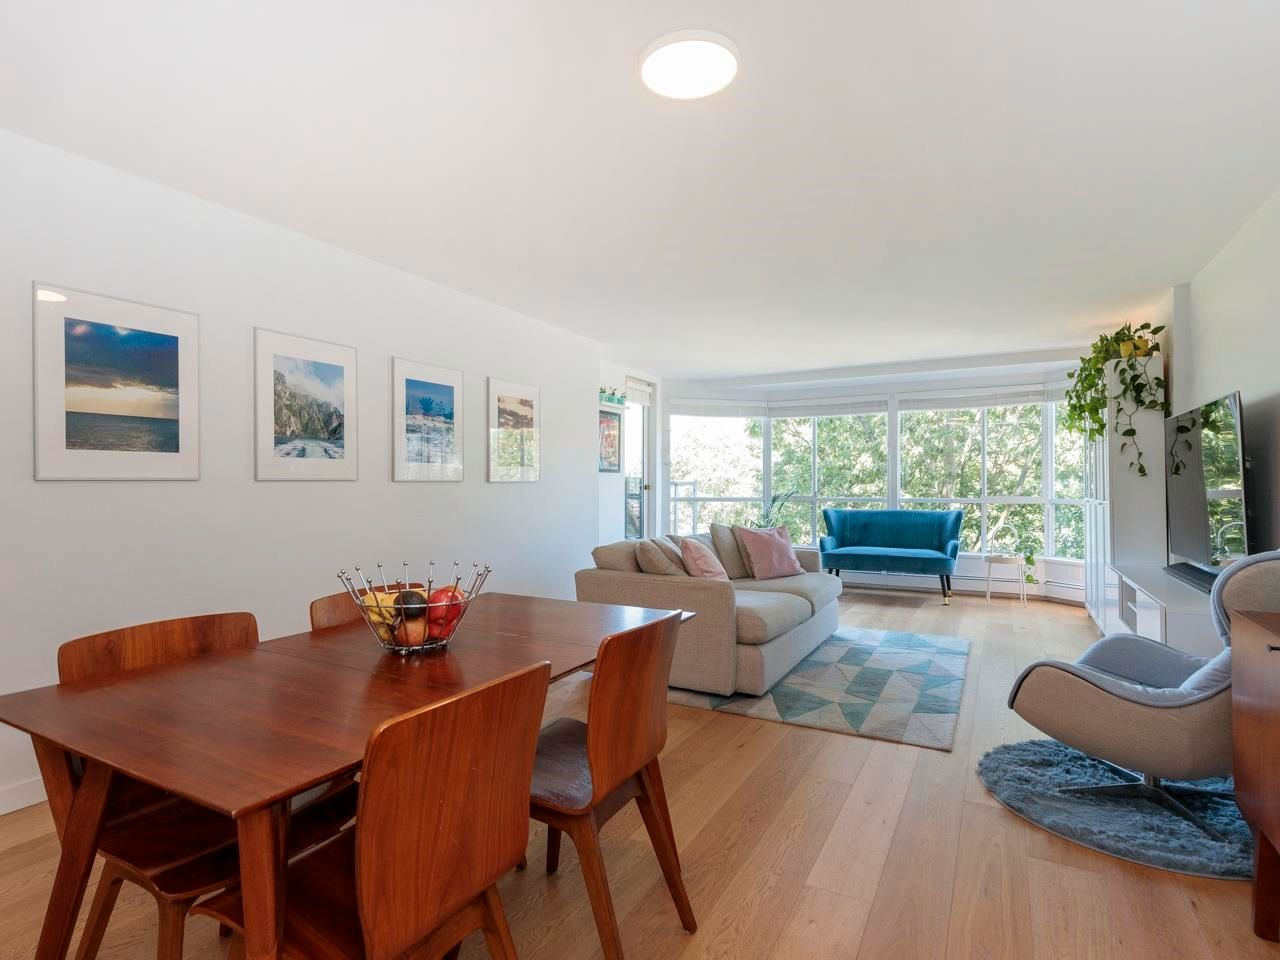 """Main Photo: 608 518 MOBERLY Road in Vancouver: False Creek Condo for sale in """"Newport Quay"""" (Vancouver West)  : MLS®# R2603503"""